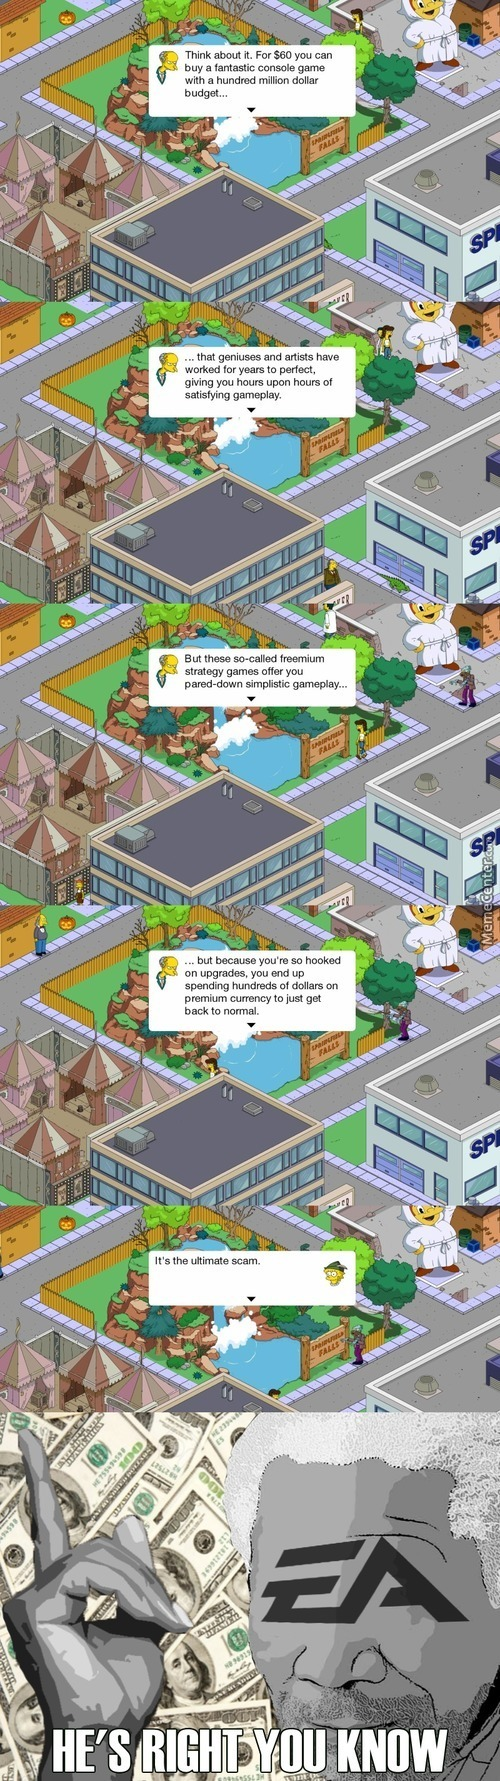 The Simpsons: Tapped Out Shedding Some Truth